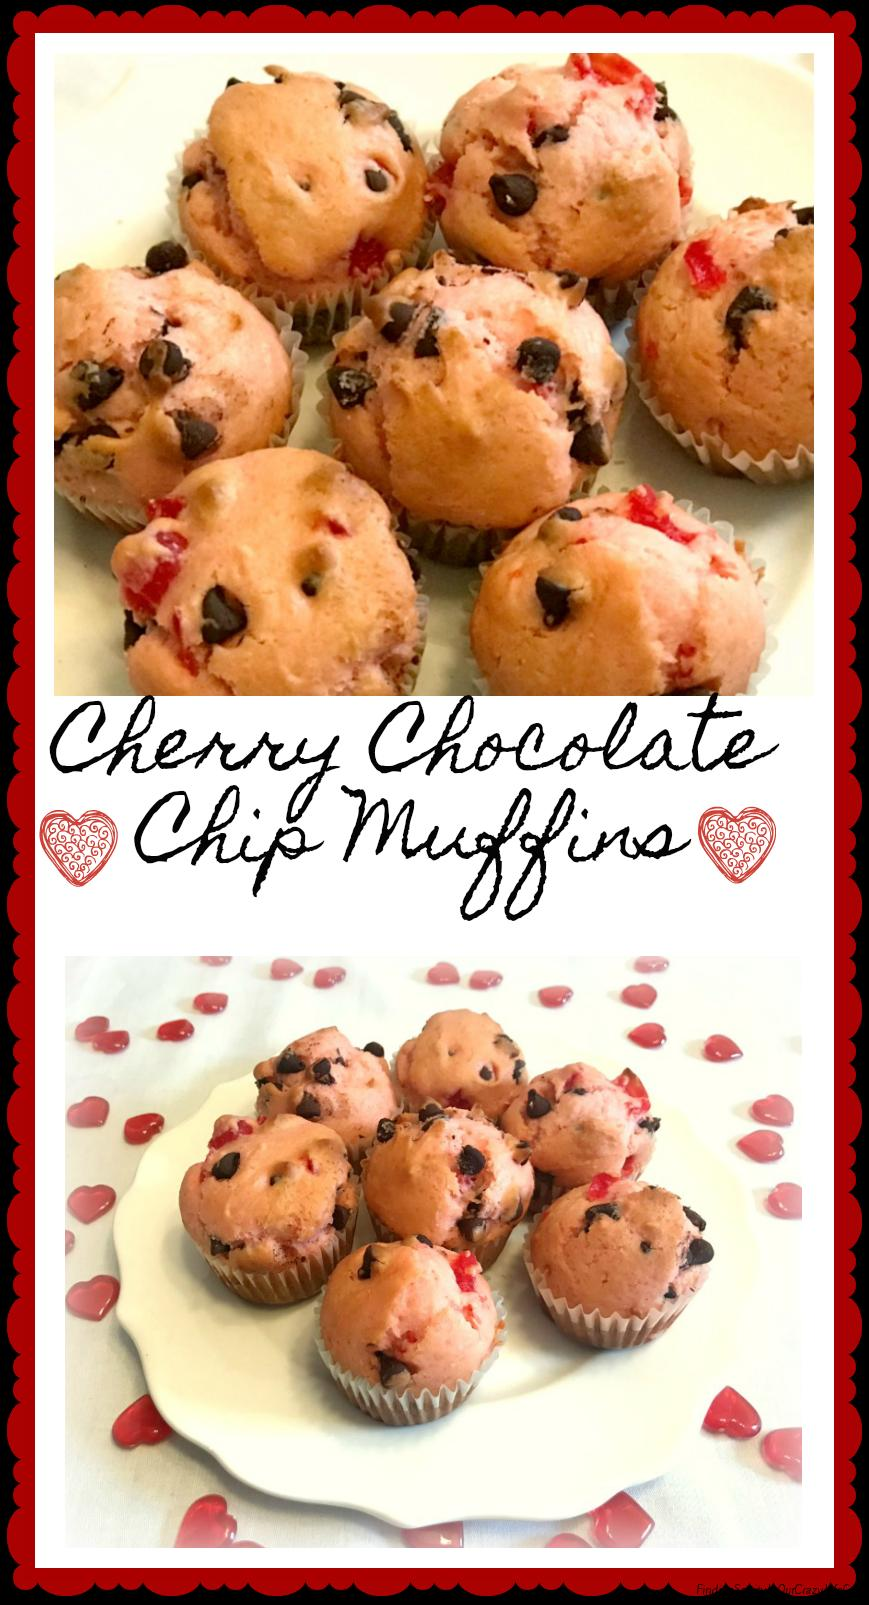 Cherry Chocolate Chip Muffins #ValentinesSweets